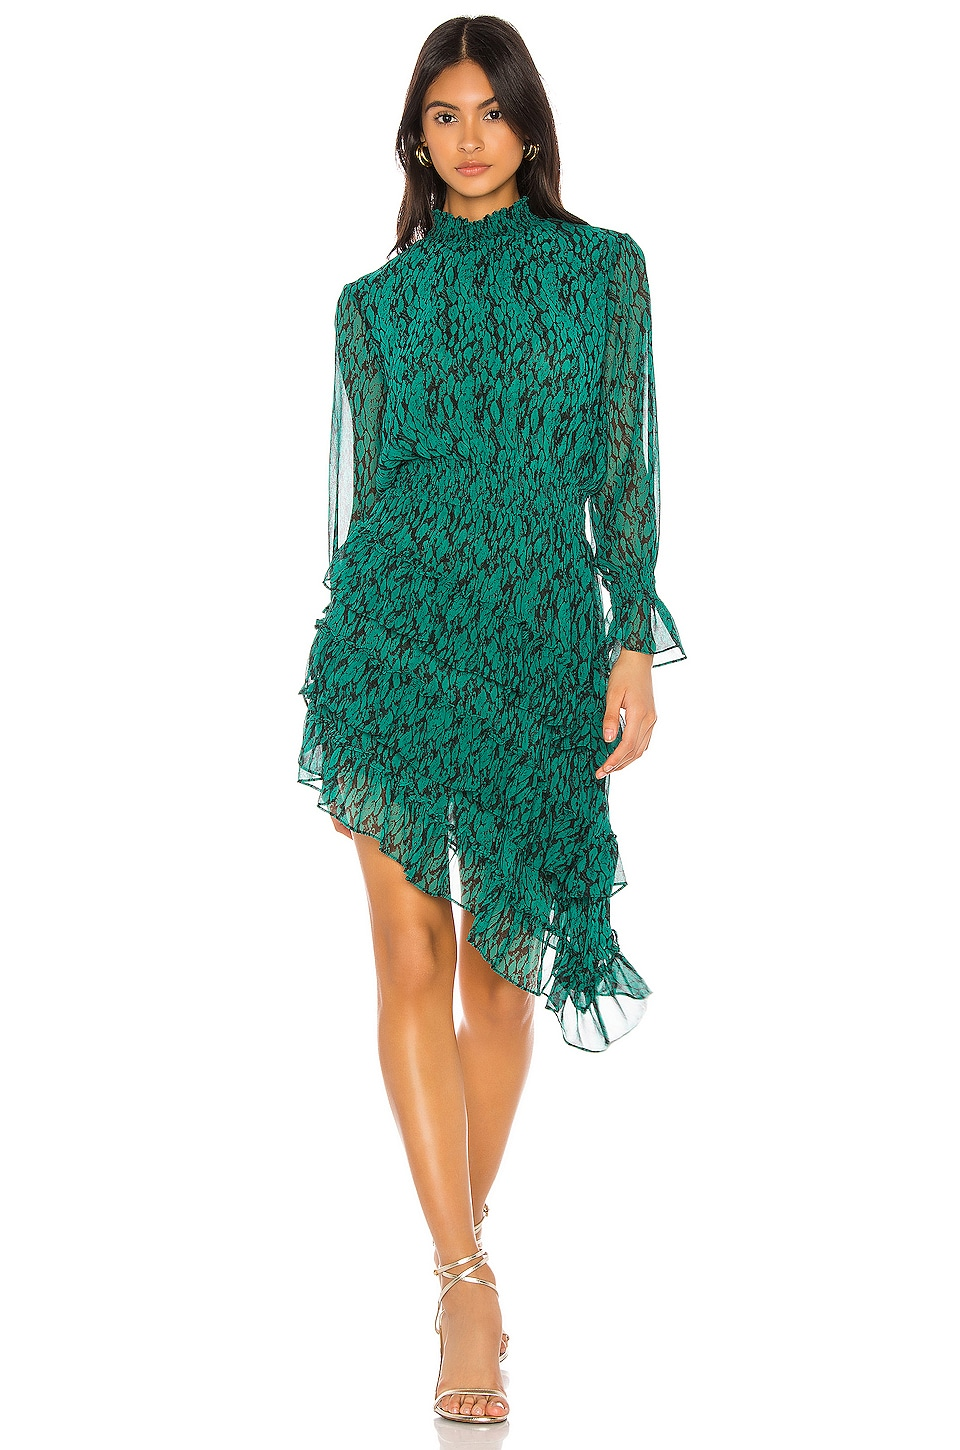 MISA Los Angeles X REVOVLE Savanna Dress in Emerald Snake